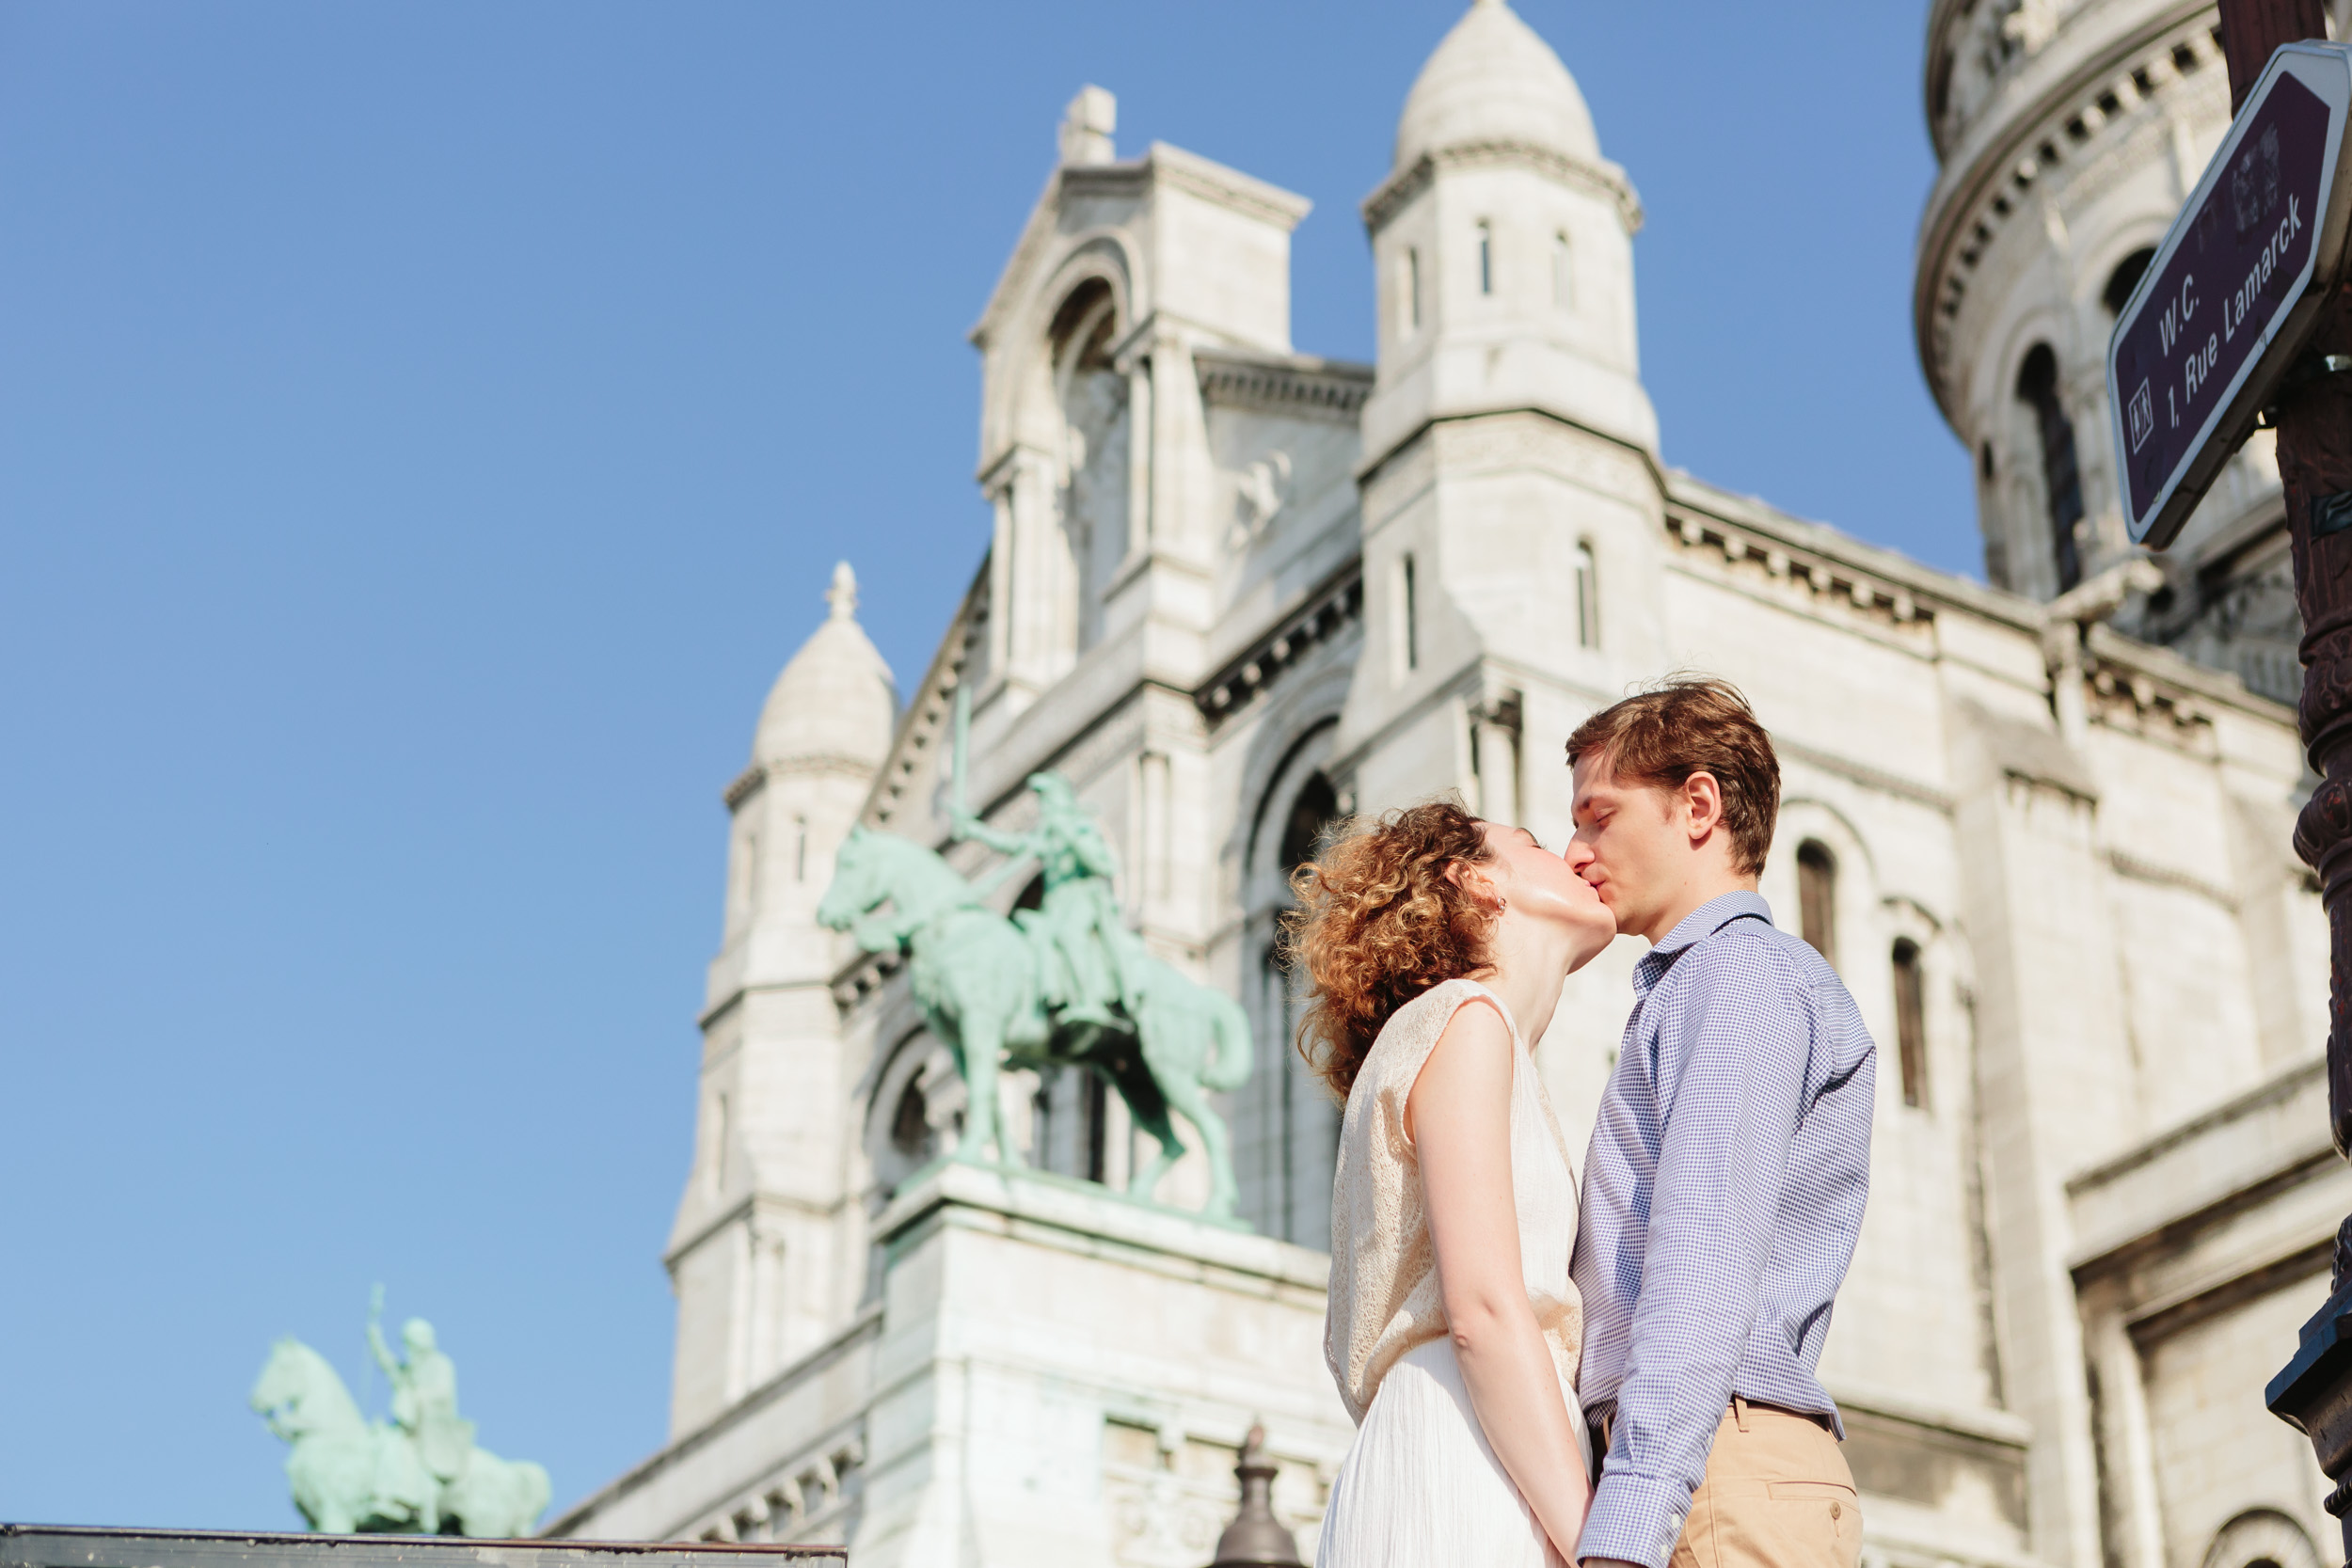 Paris Travel Love Story couple kissing by Sacre Coeur Cathedral at Montmartre captured by Paris Photographer Federico Guendel IheartParisFr